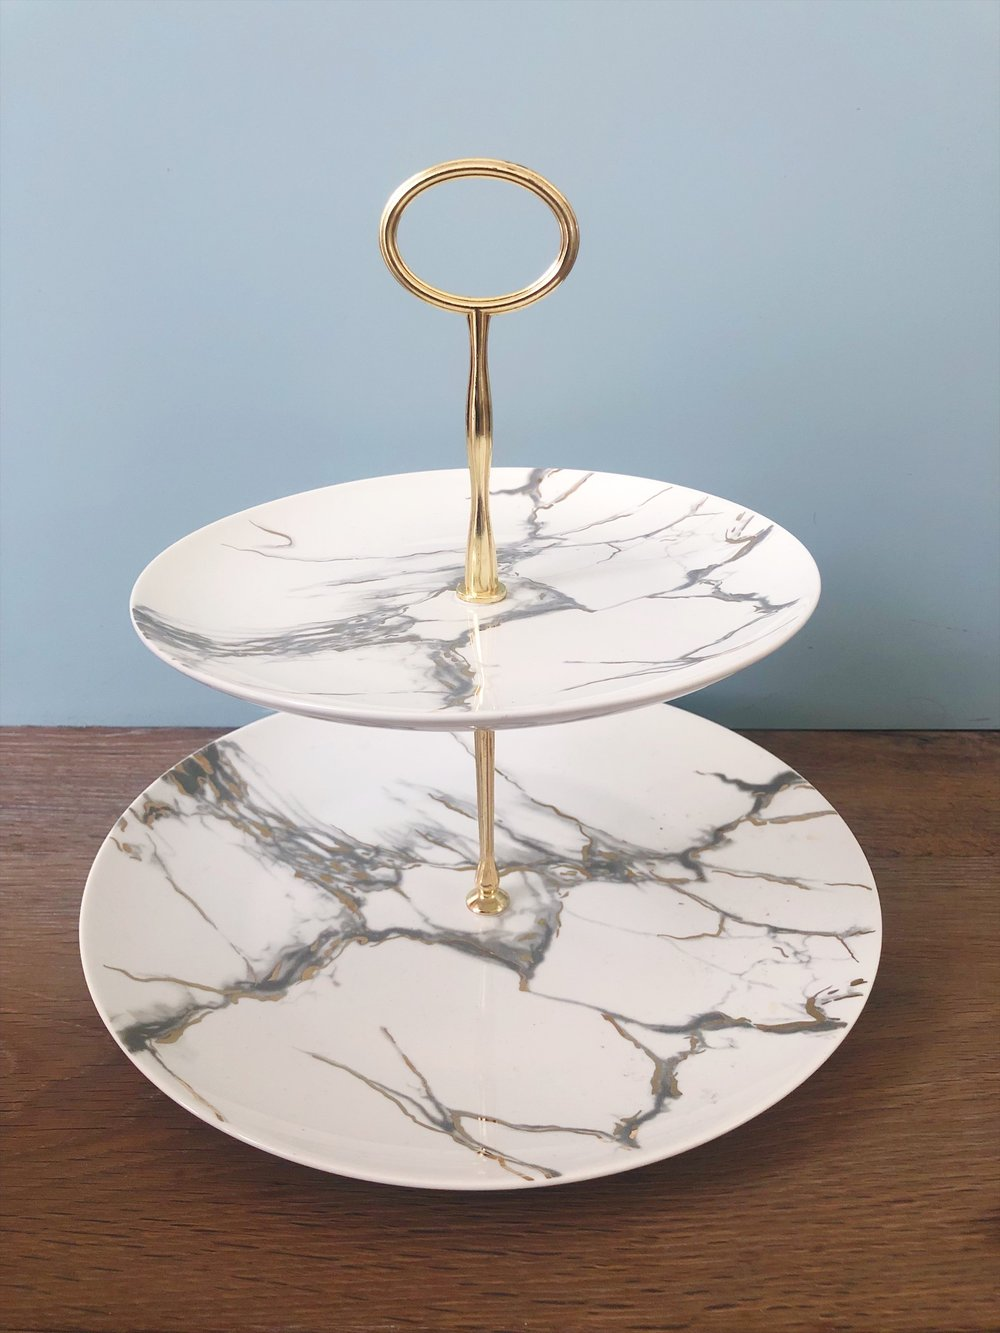 cake plates/tiers - These items have increasingly become popular, and sometimes not just for holding a cake! It's a great way to display similar items, like olive oil and vinegar in the kitchen, or a creative way of displaying a charcuterie board on a three-tiered plate.